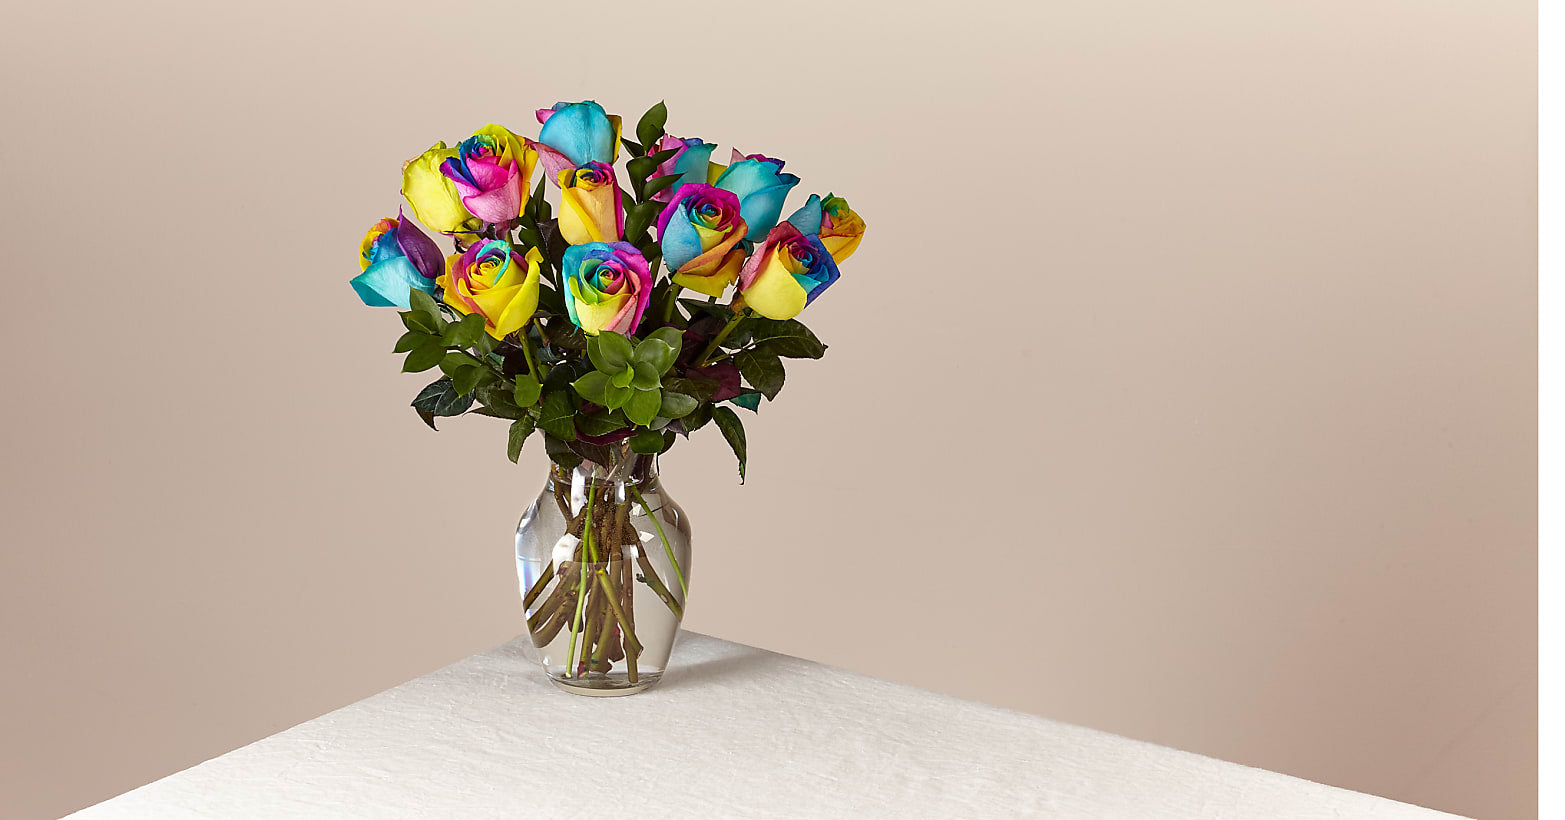 Rainbow Rose Bouquet - Image 1 Of 2